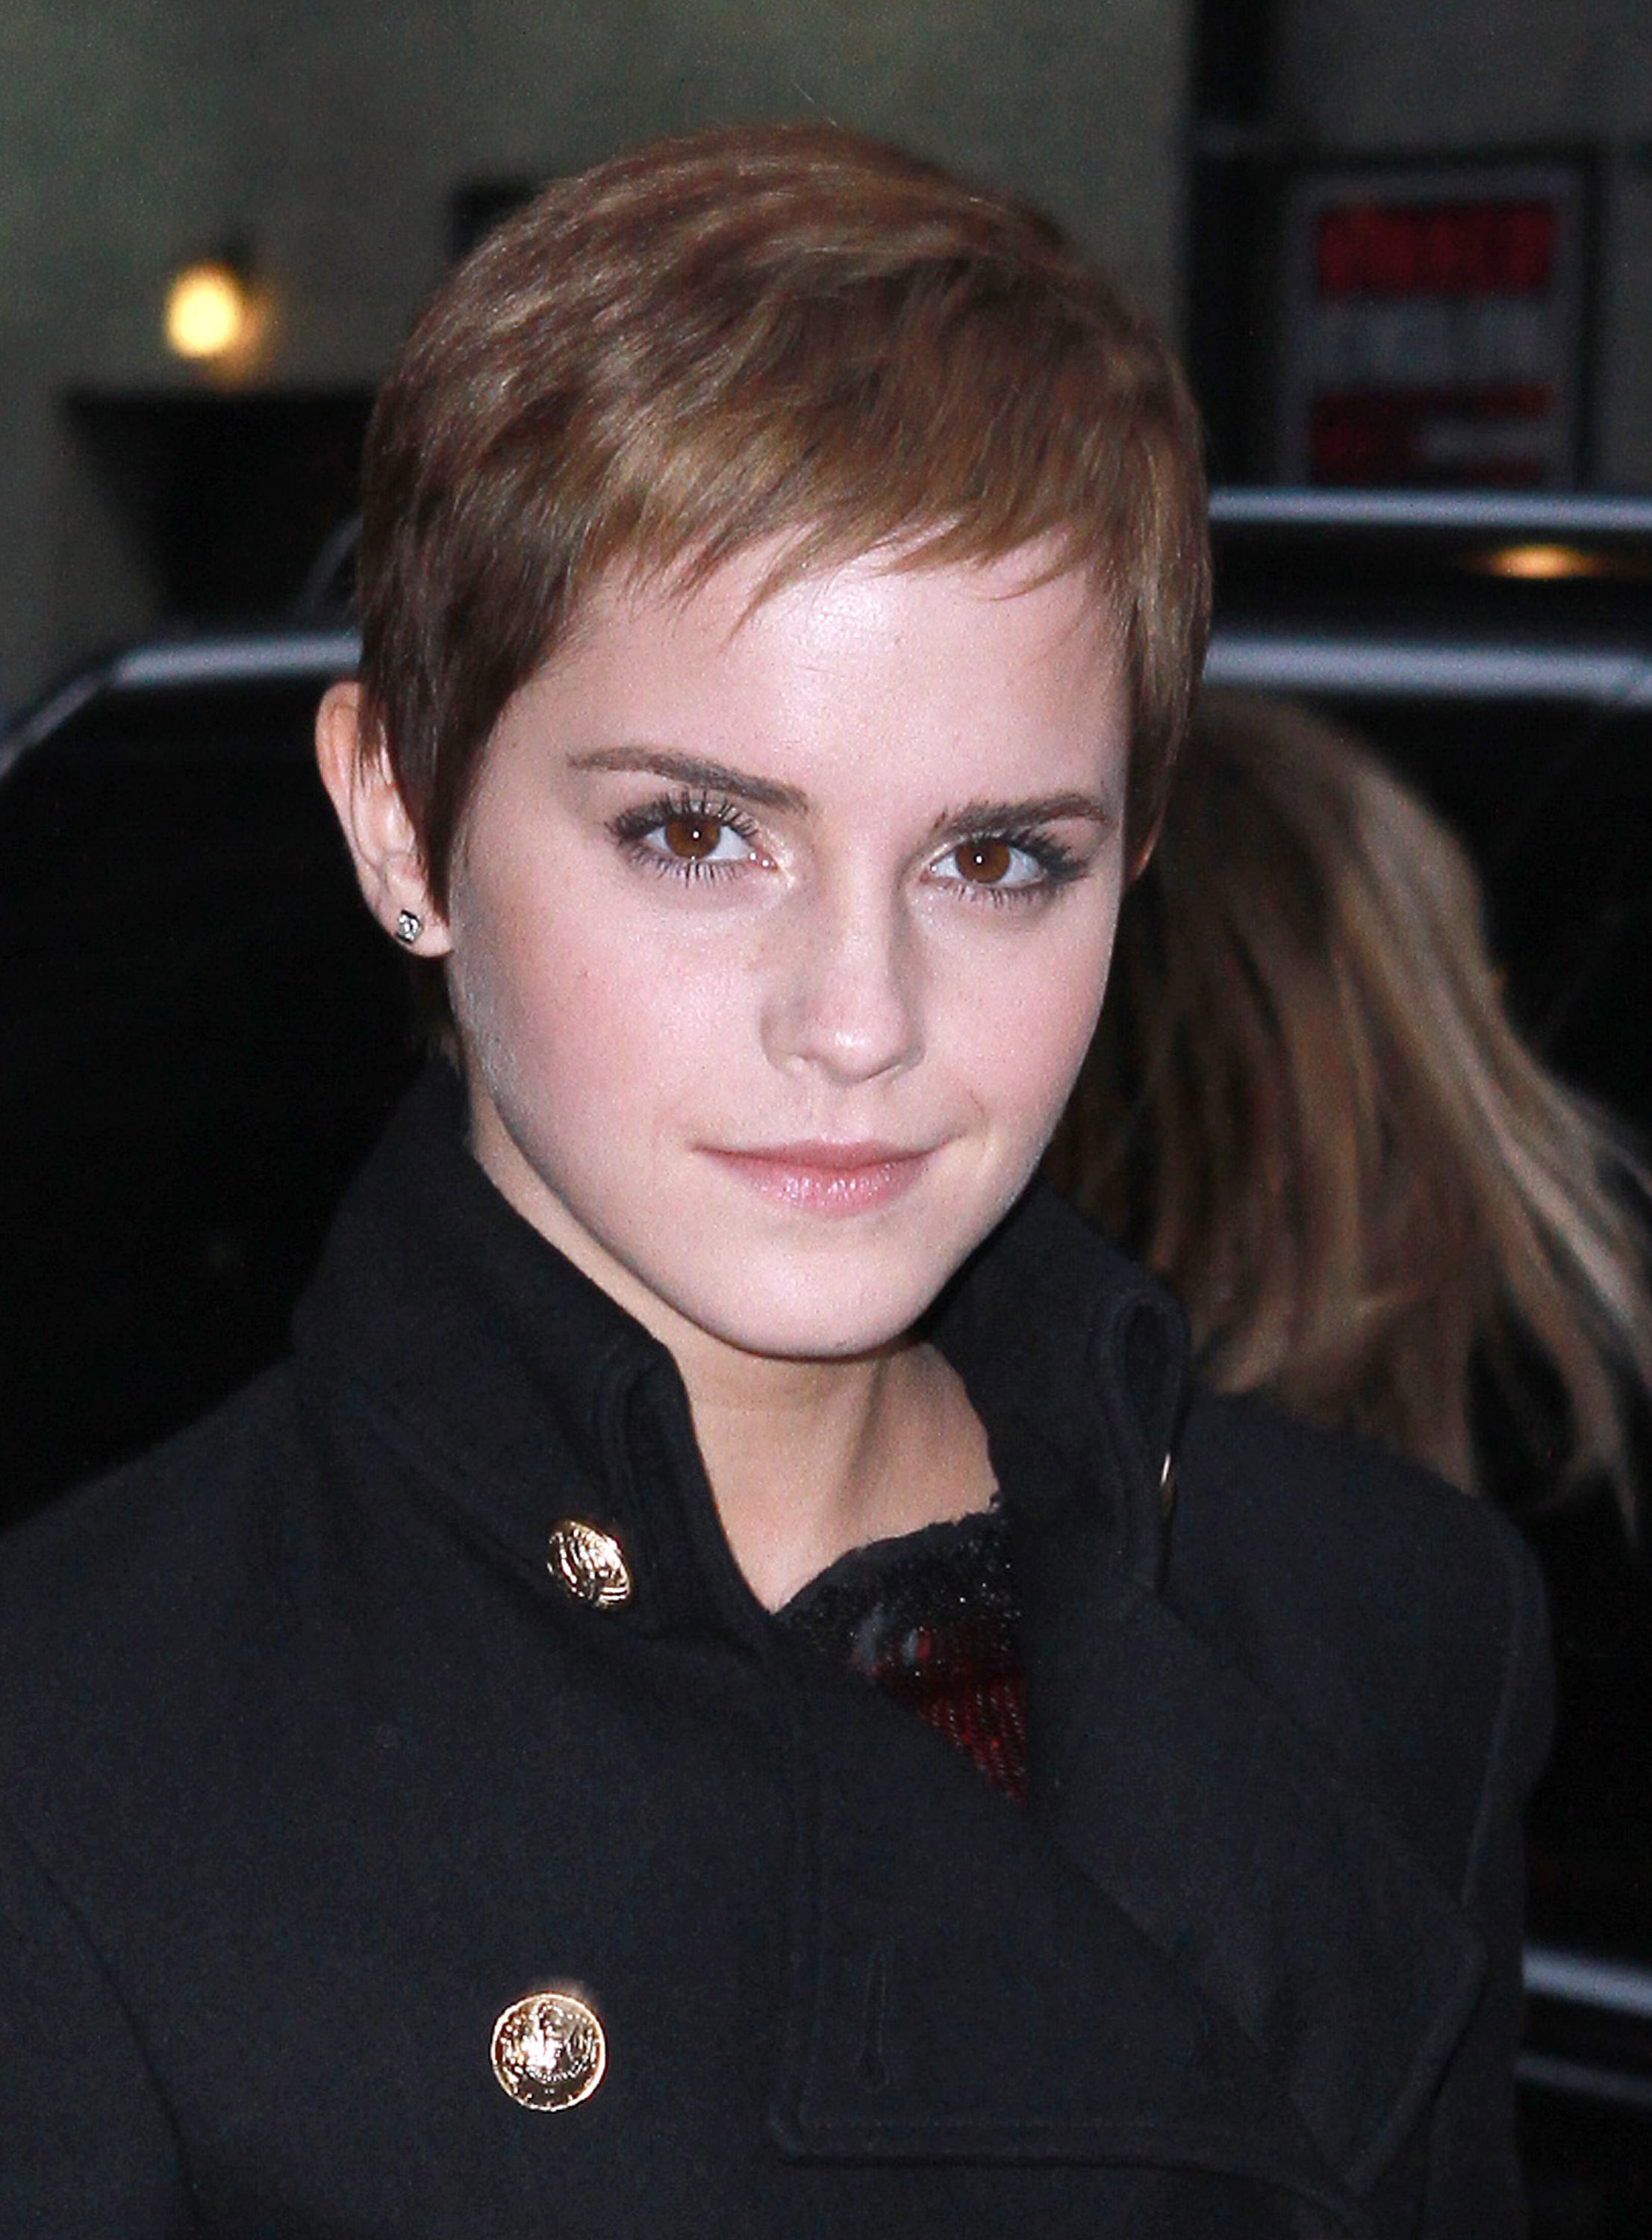 Emma Watson S Super Short Hairstyle Stylecaster